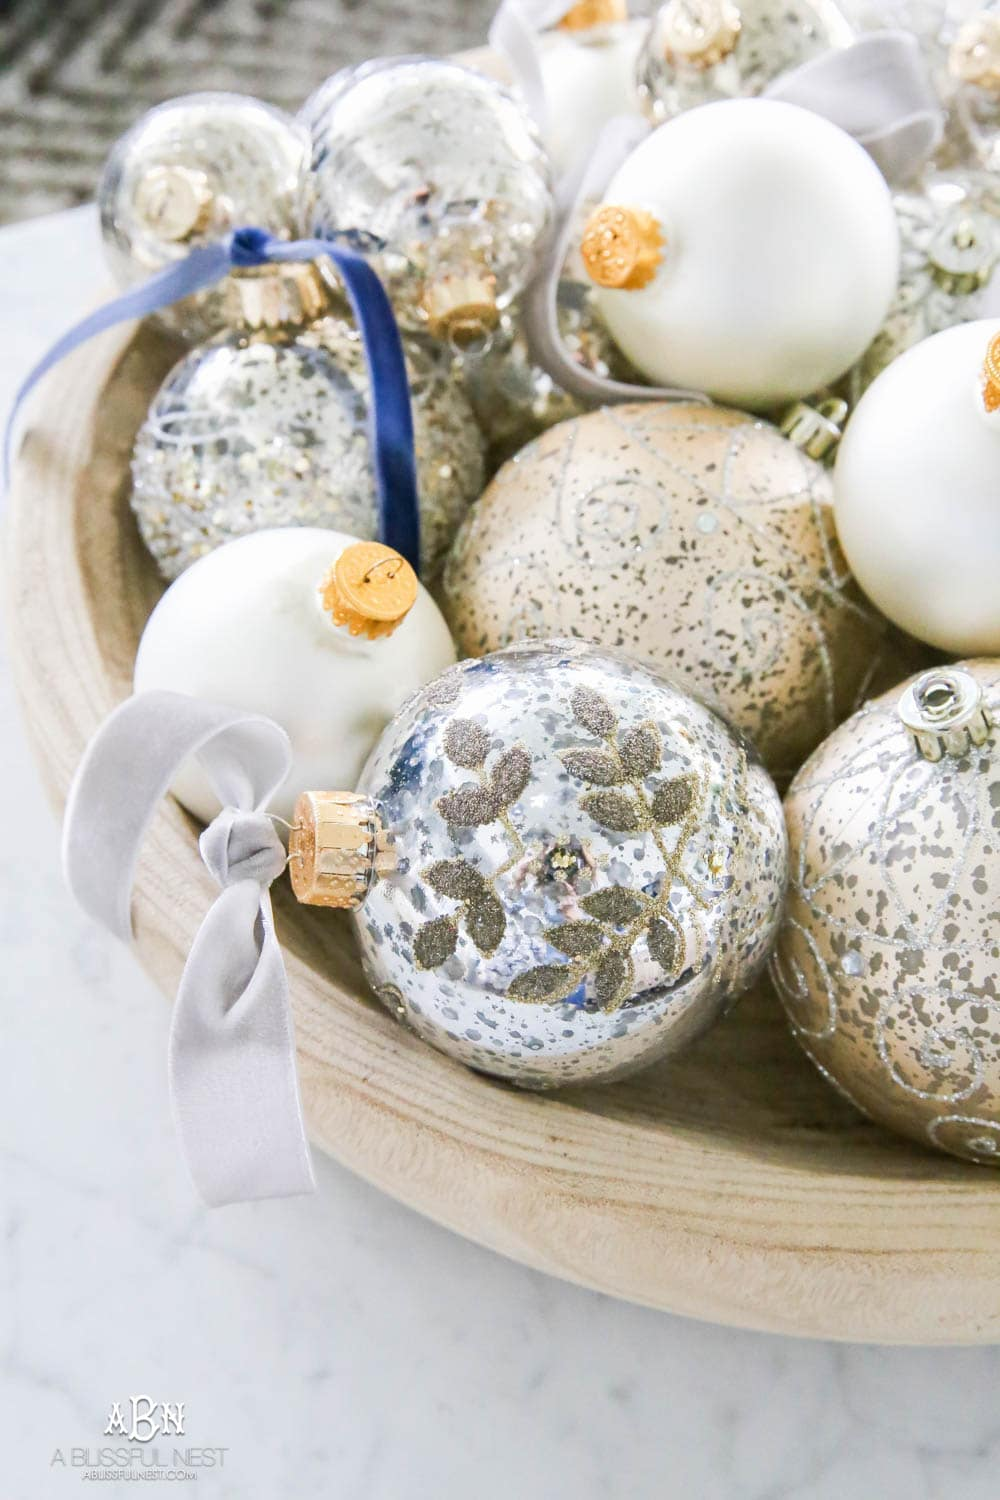 Mercury glass ornaments with velvet ribbons tied and collected in a wood bowl on a coffee table for a gorgeous holiday décor display. Simple touches for Christmas décor that make big impact. Check out all the white, silver and gold Christmas decor in this holiday home tour on ABlissfulNest.com. #ABlissfulNest #Christmasdecor #Christmasdecorating #CoastalChristmasdecor #christmastree #christmasmantle